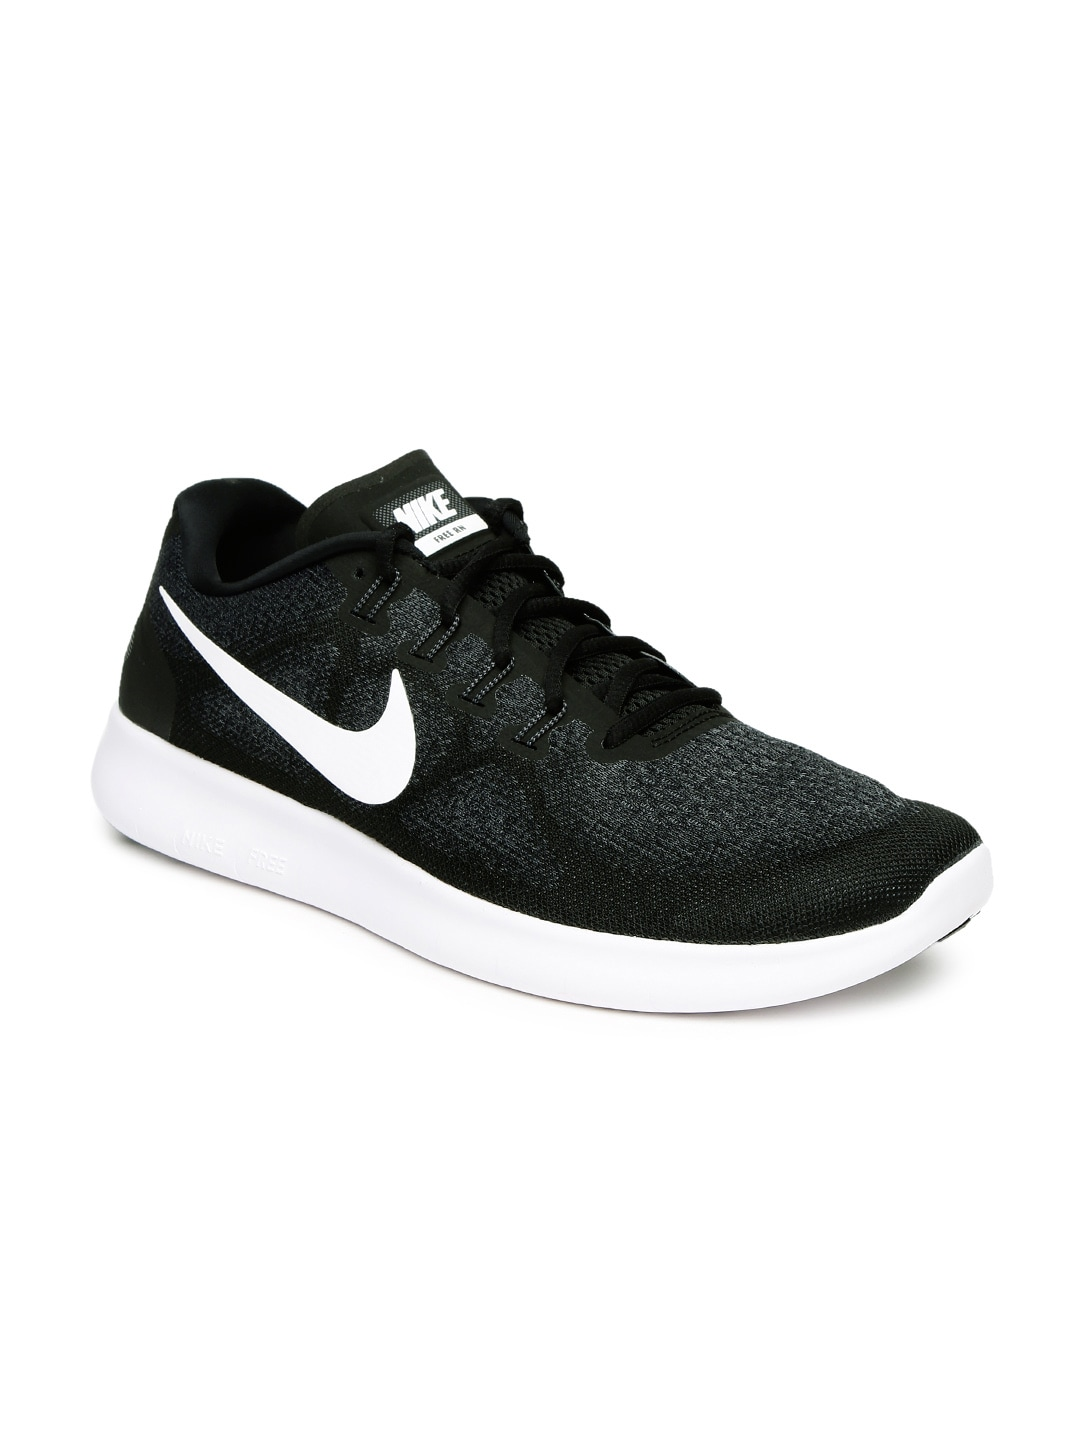 b526a5629982 Nike Free Running Shoes - Buy Nike Free Running Shoes online in India